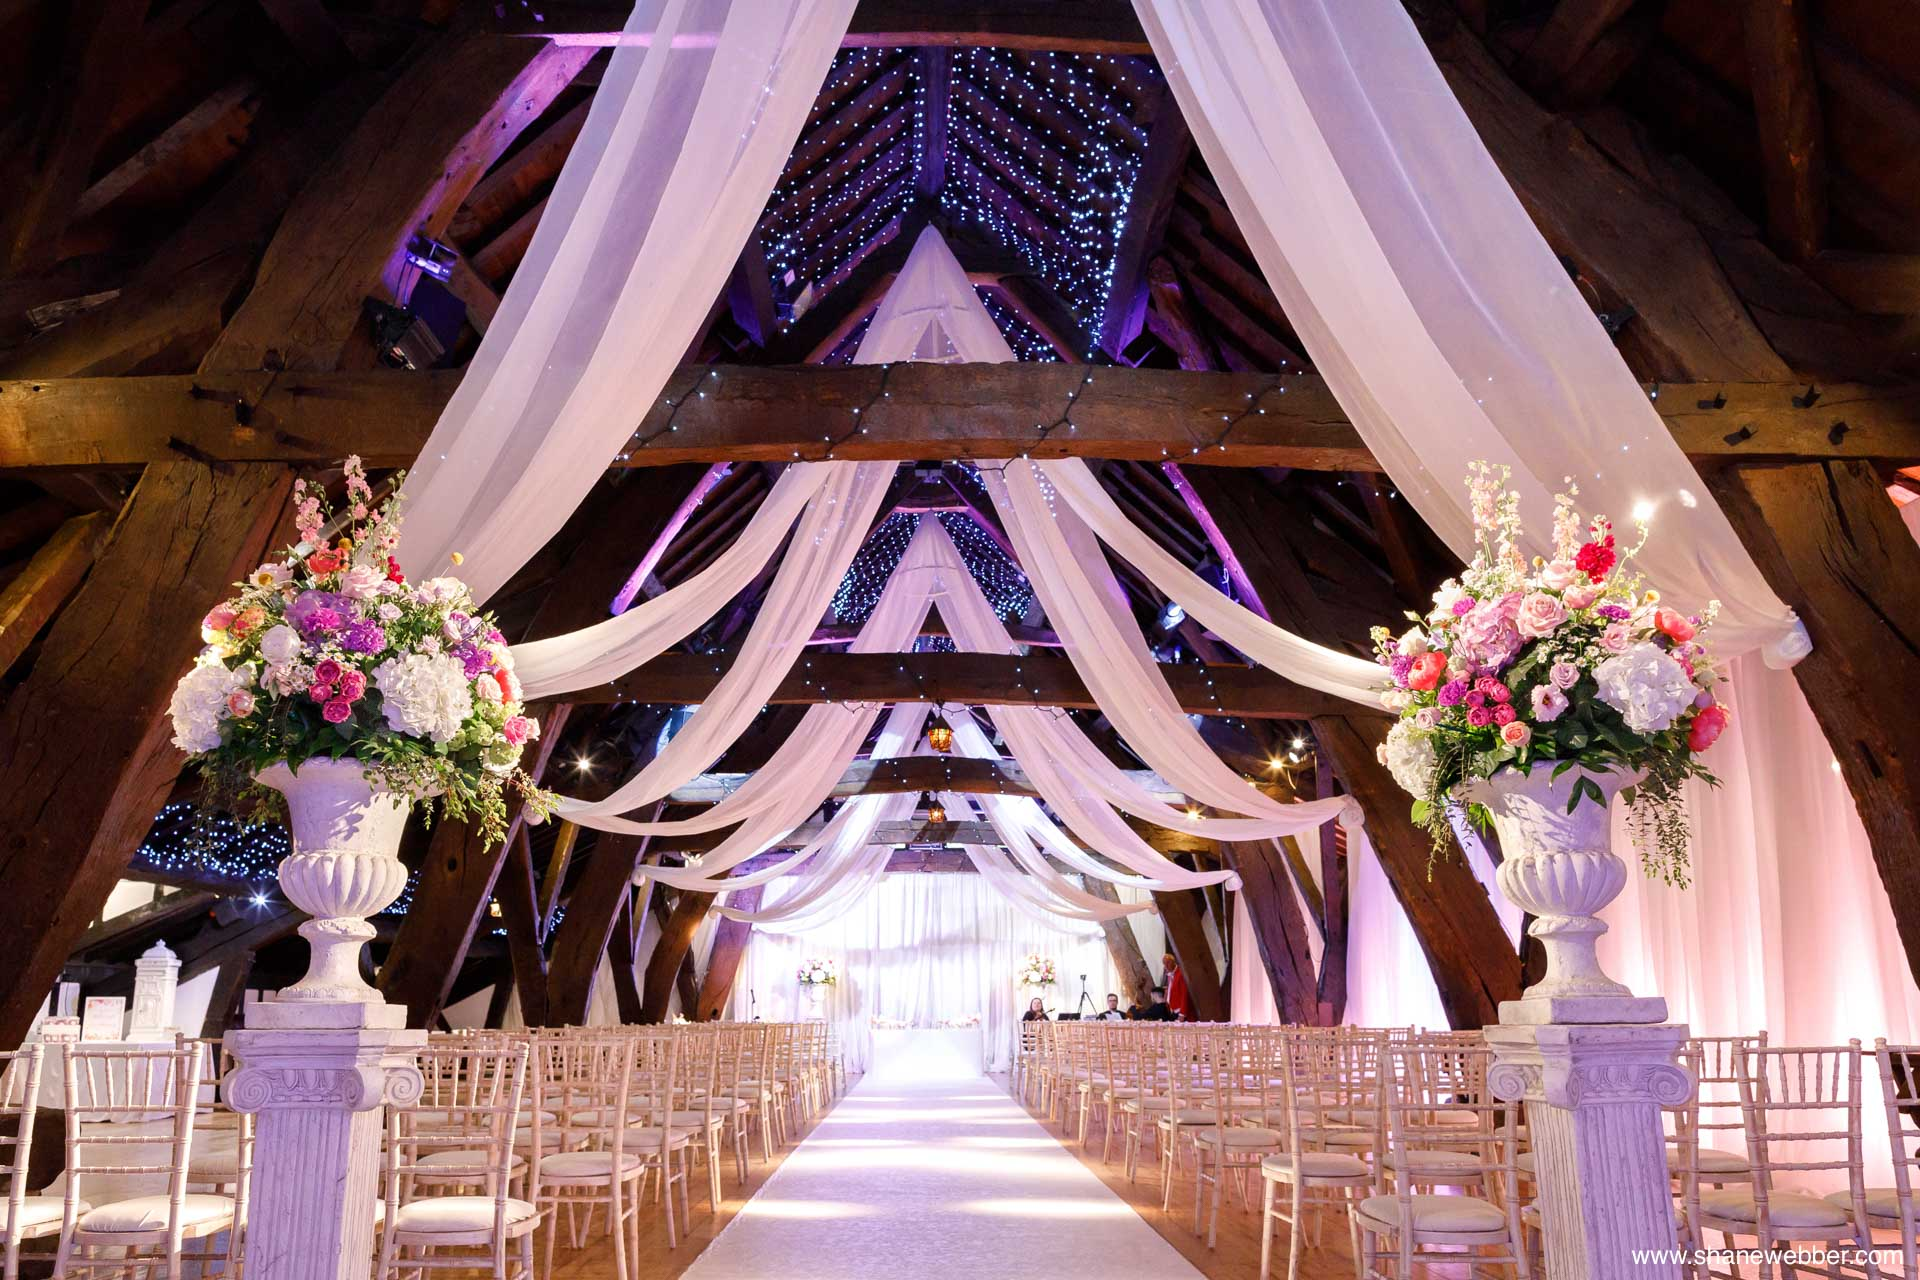 Rivington Hall Barn wedding ceremony room